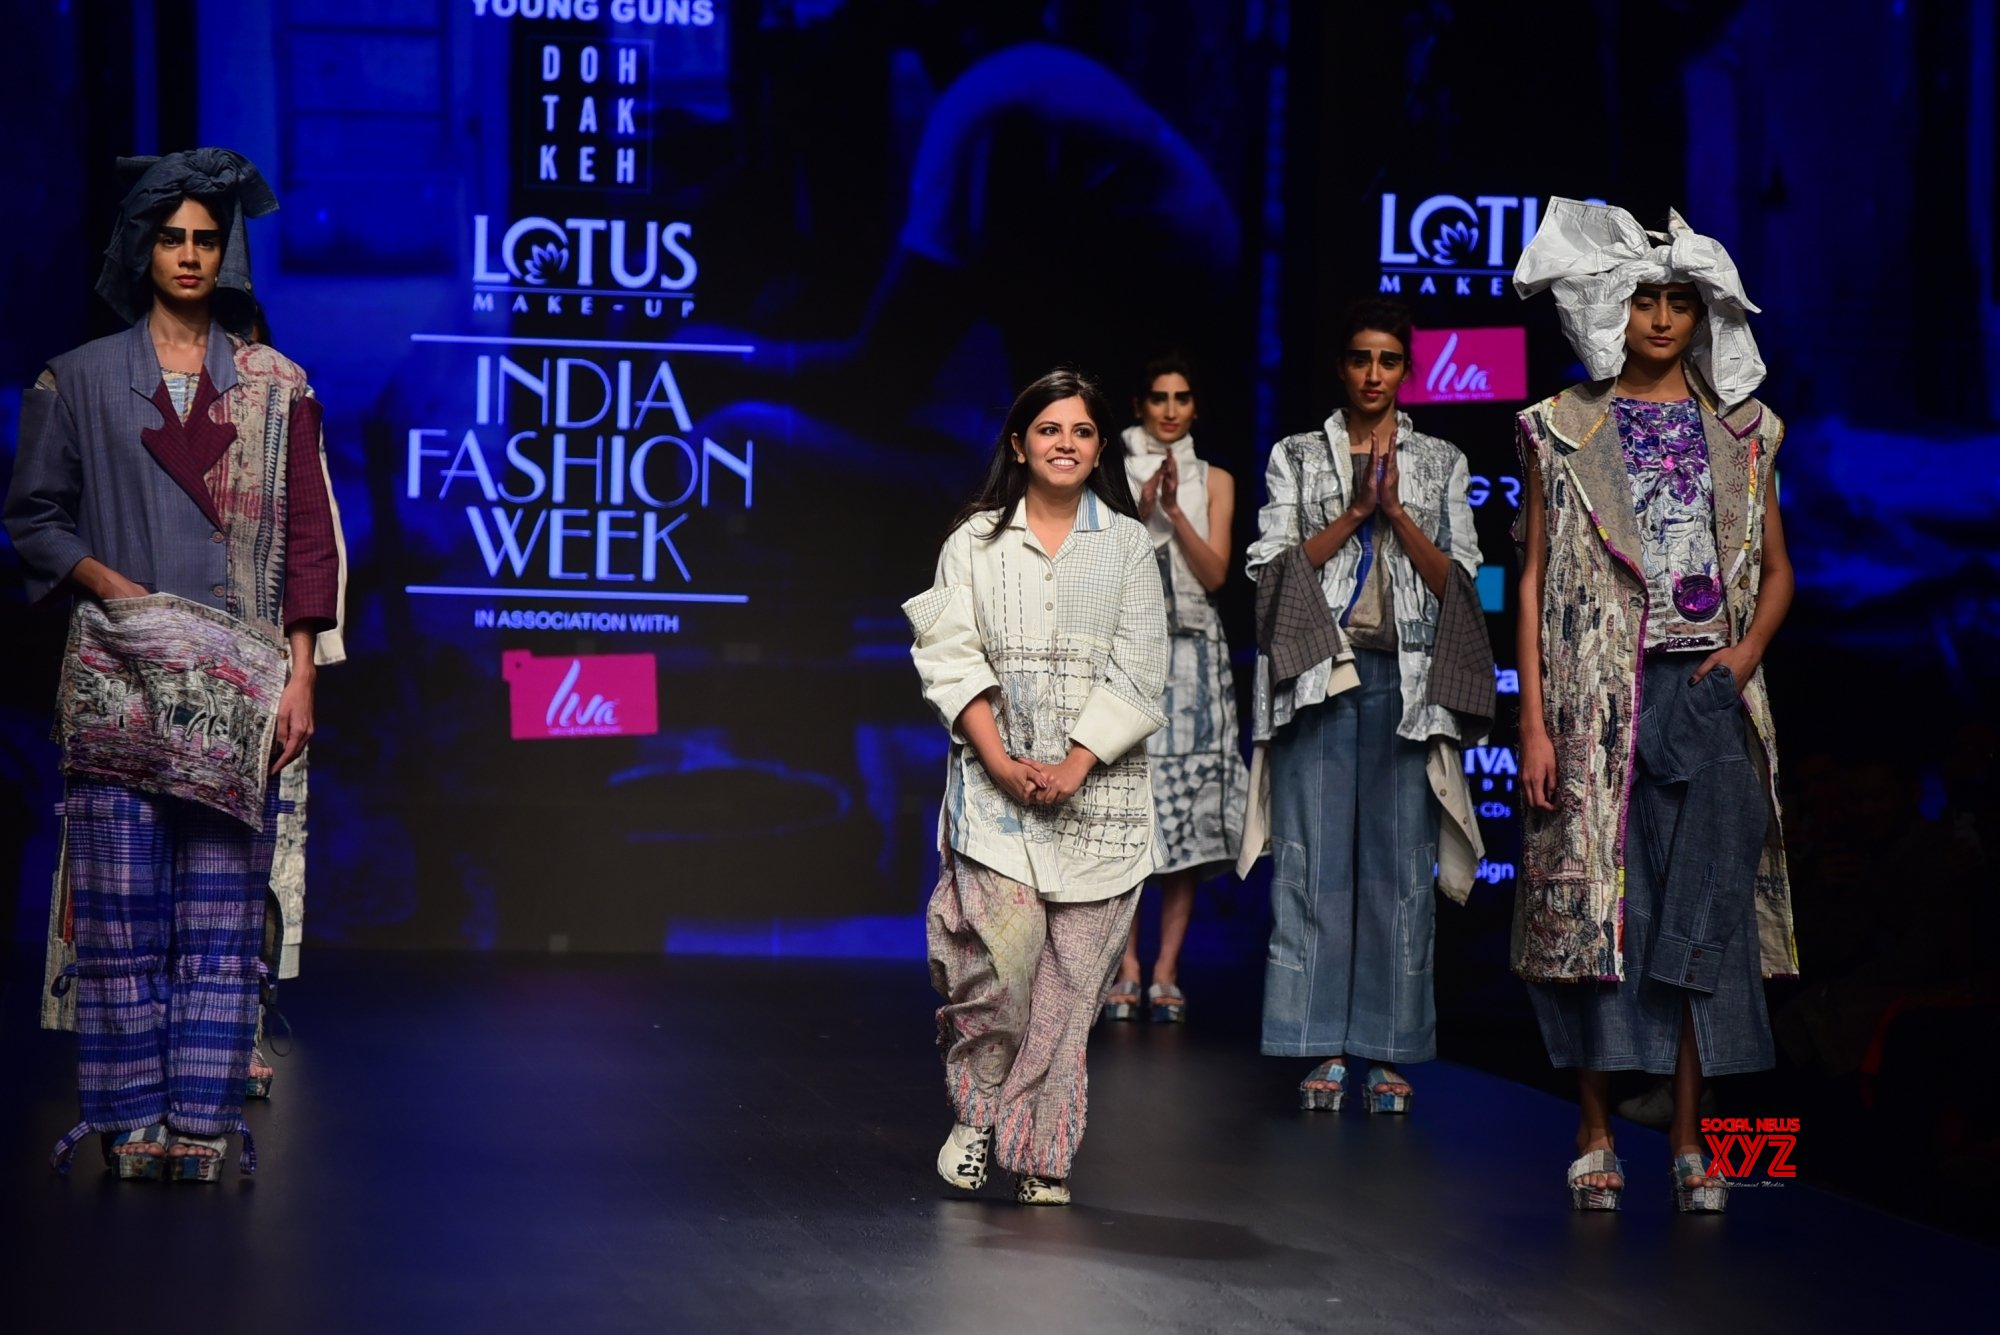 New Delhi: Lotus India Fashion Week - Day 4 - Disha (Batch - 1) #Gallery